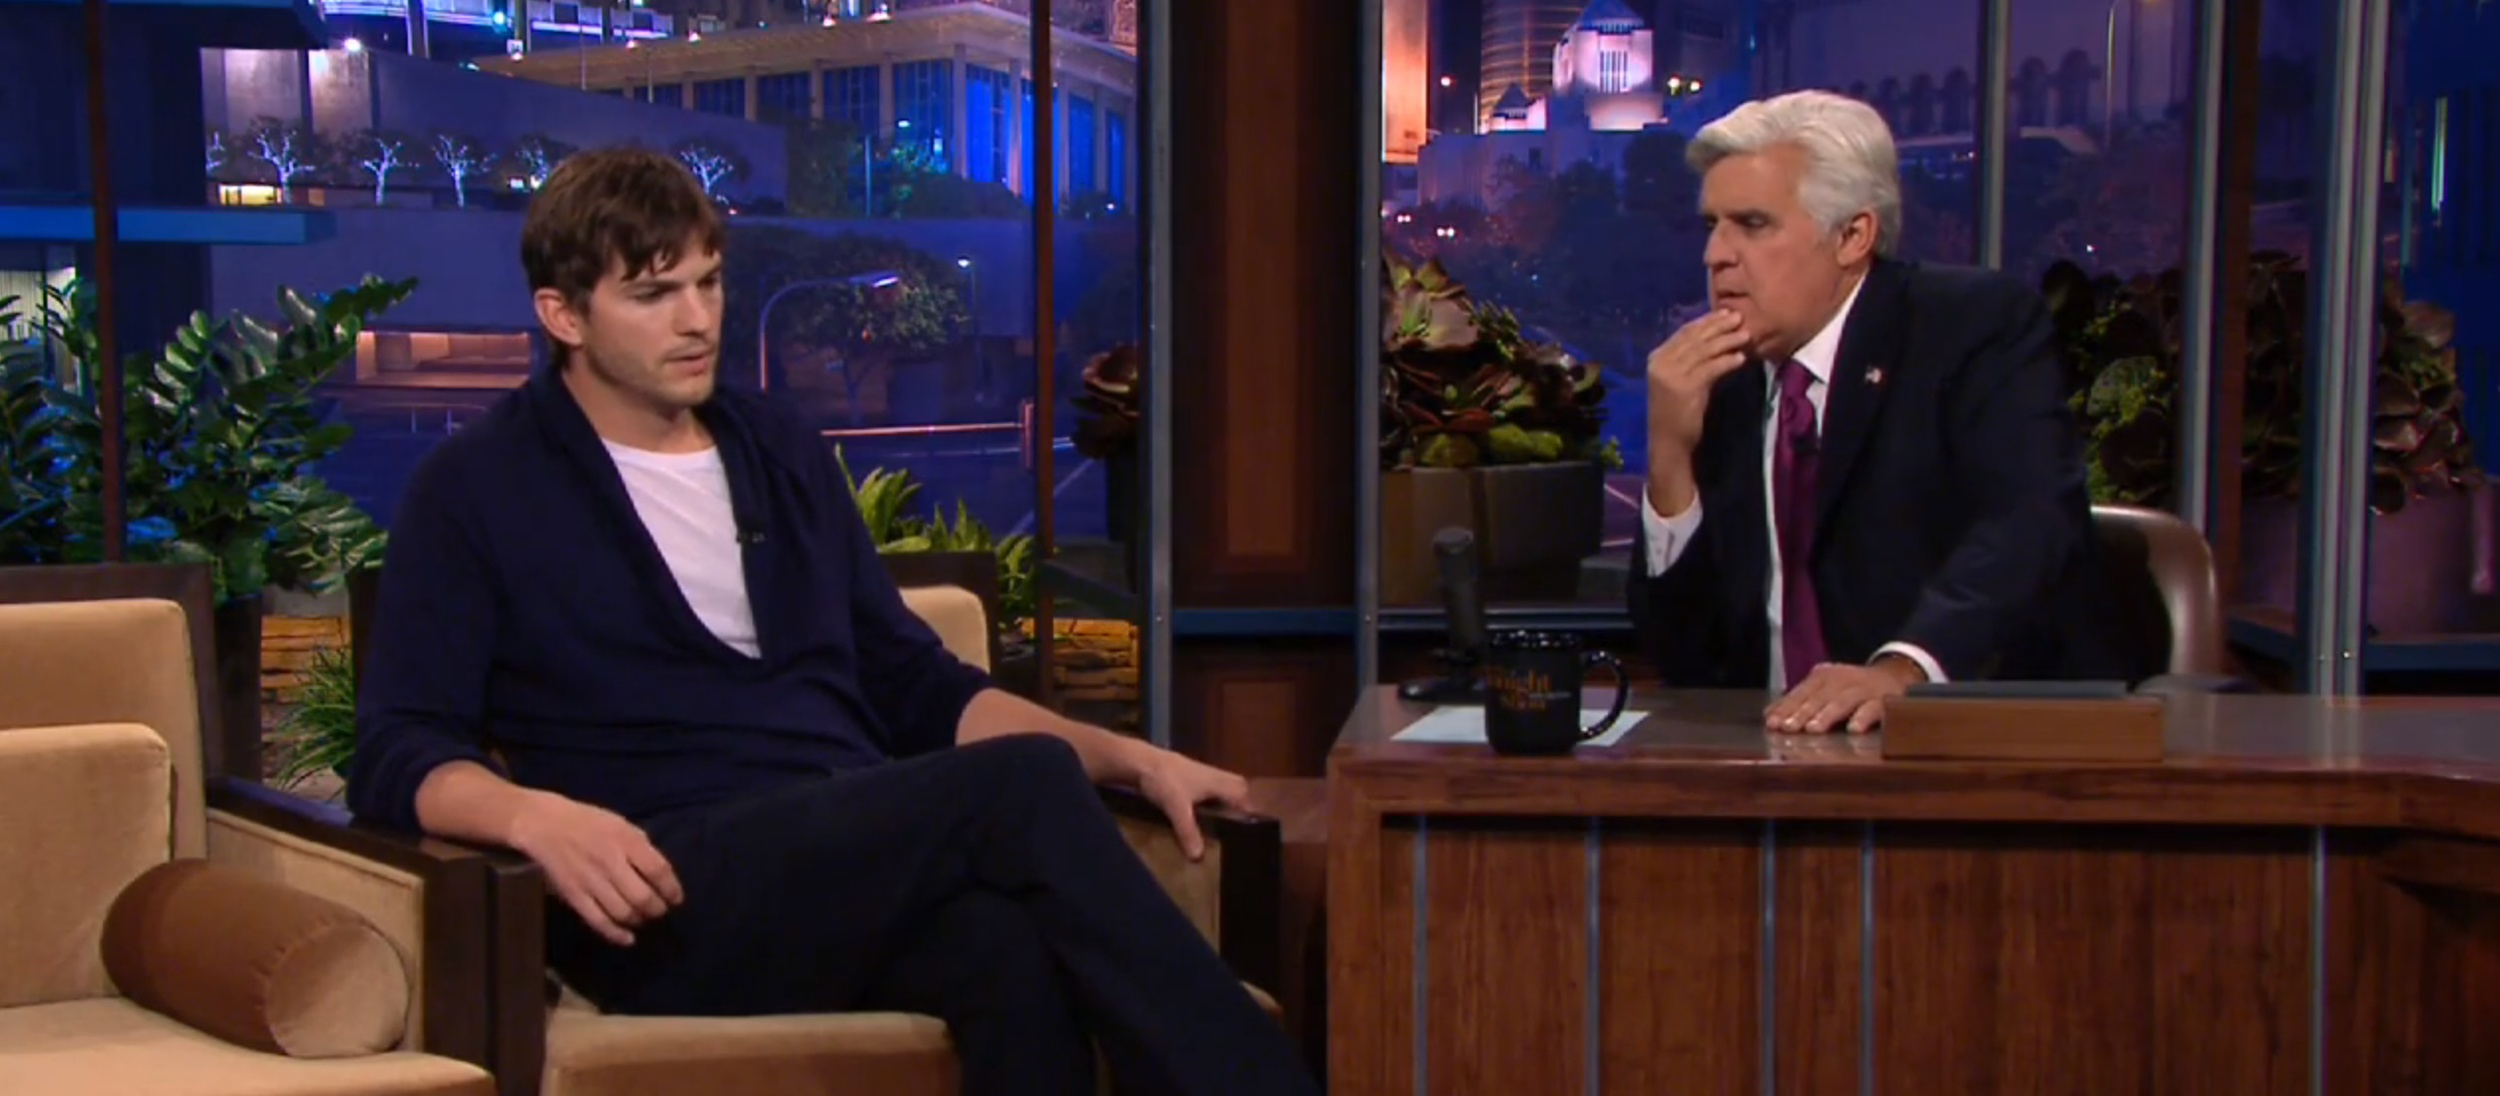 Ashotn Kutcher with Jay Leno